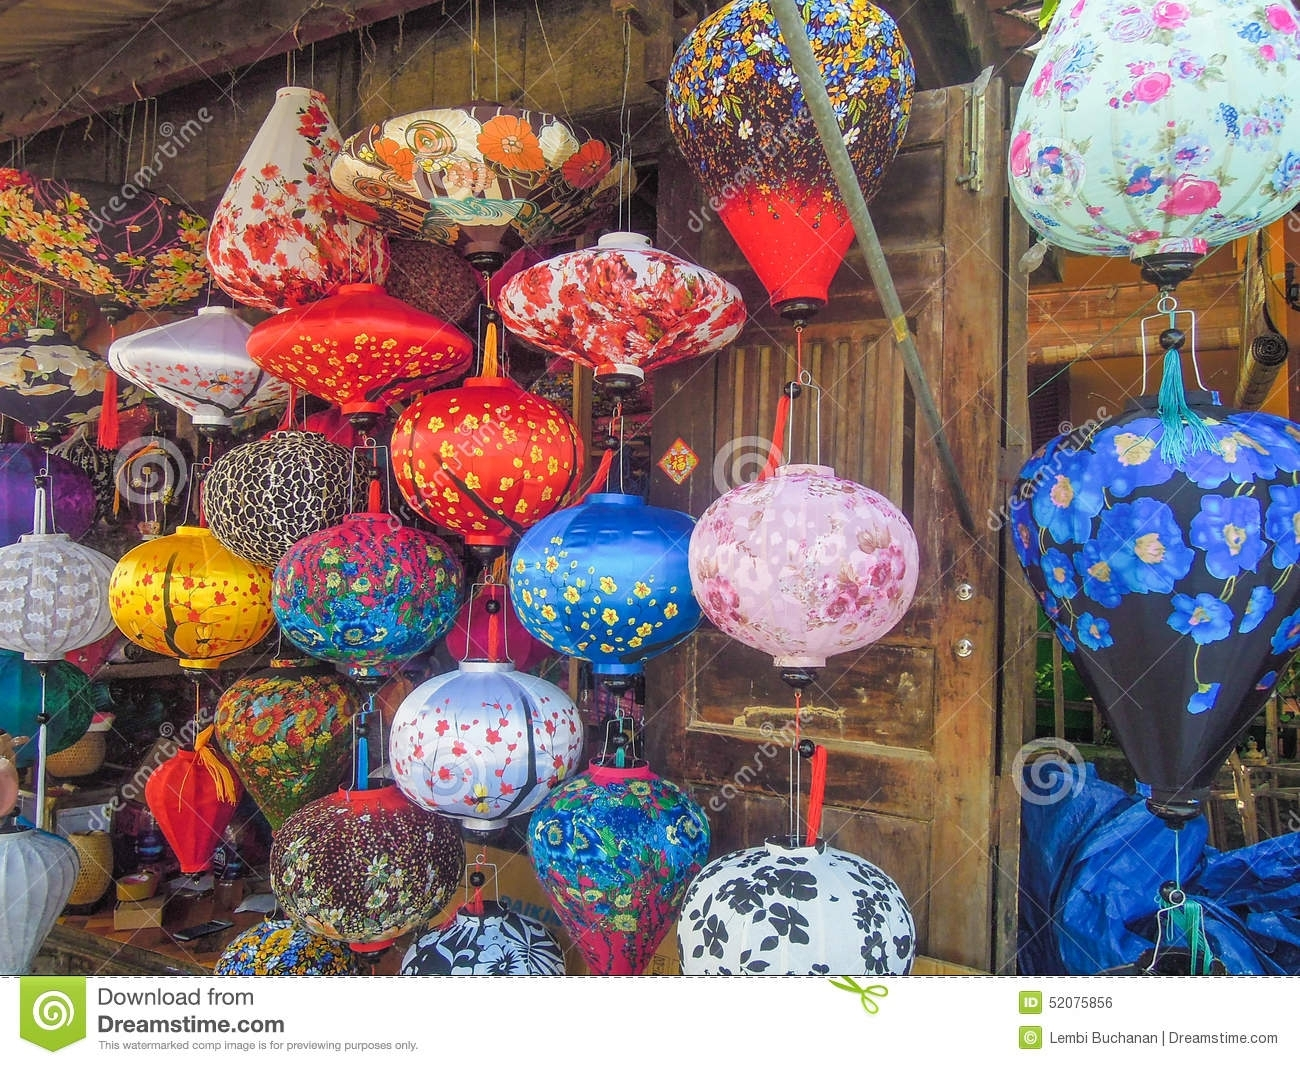 Colorful Chinese Lanterns For Sale At An Outdoor Market In Vietnam inside Colorful Outdoor Lanterns (Image 8 of 20)